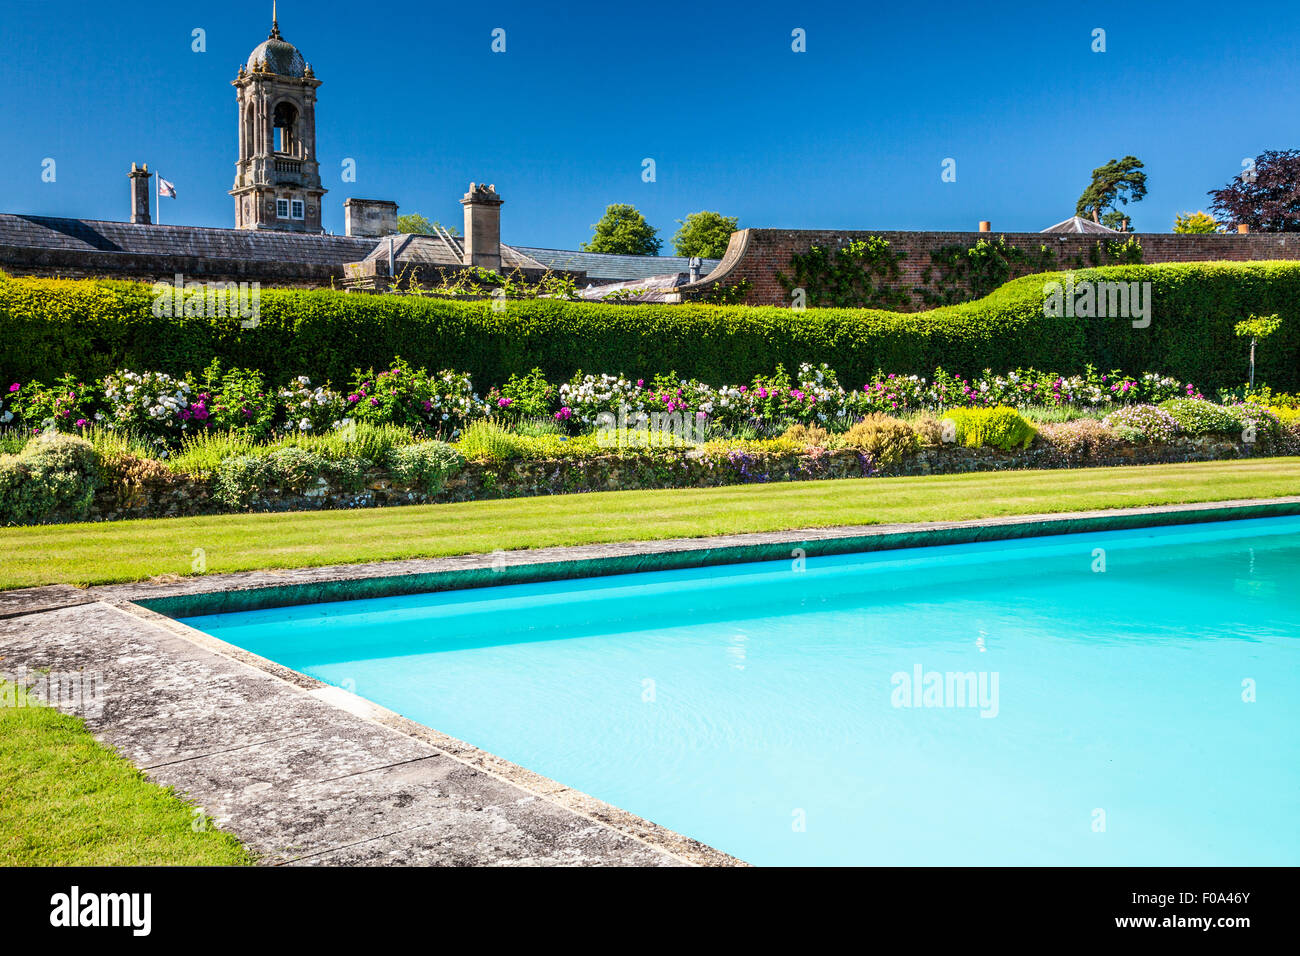 The Swimming Pool In The Walled Garden Of Bowood House In Wiltshire Stock Photo Royalty Free